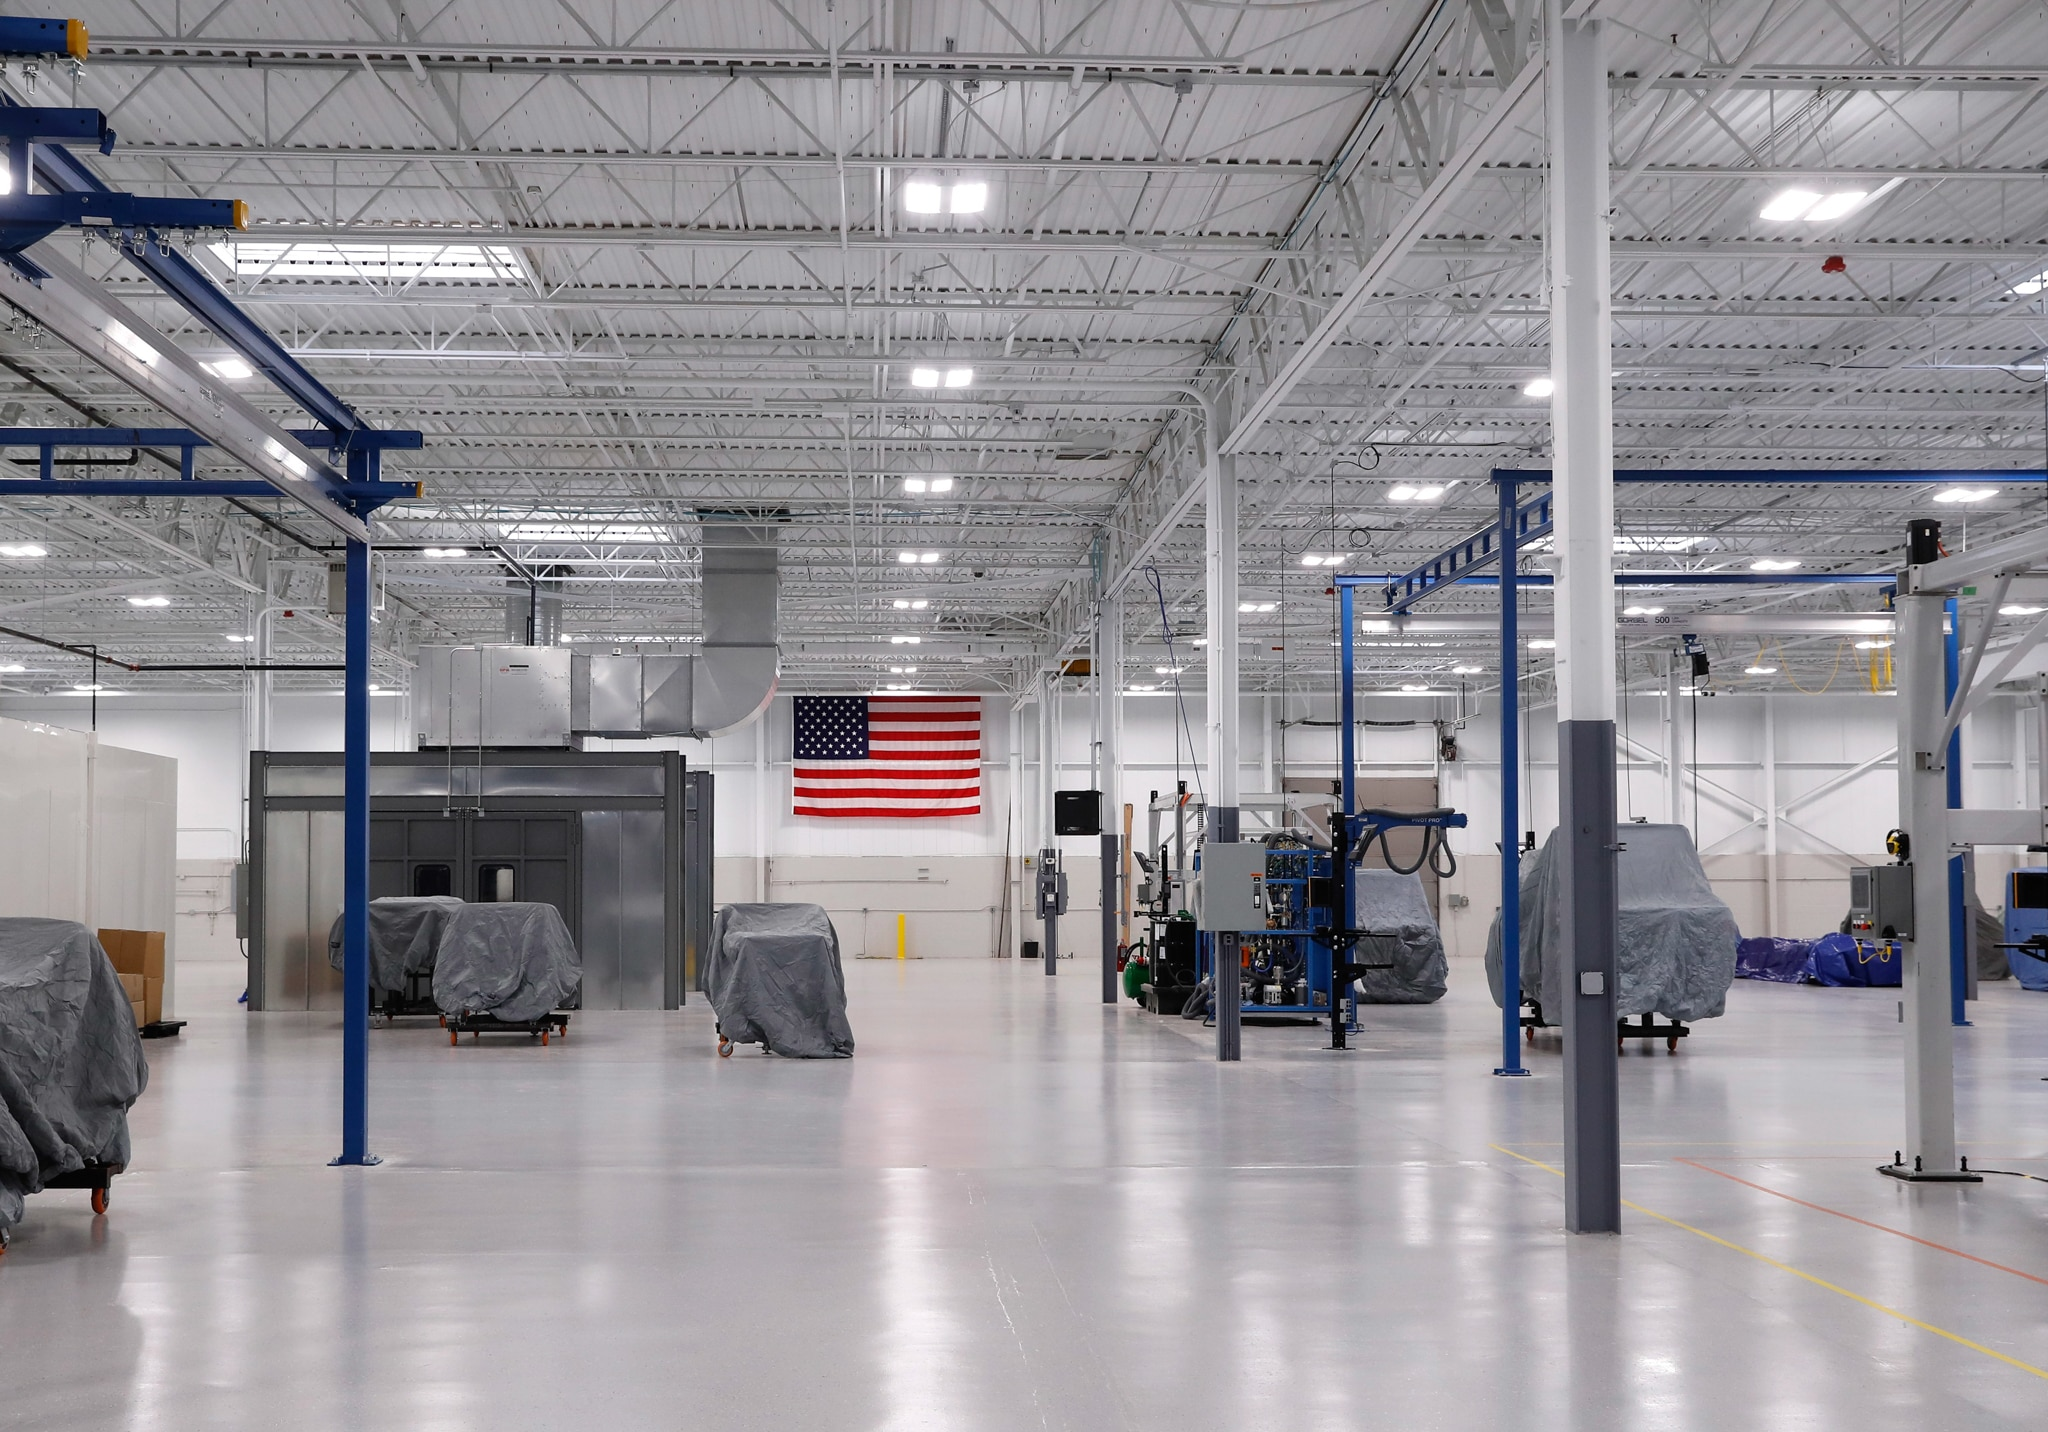 Spacious plant floor with covered machinery and American flag on back wall (© AP Images)